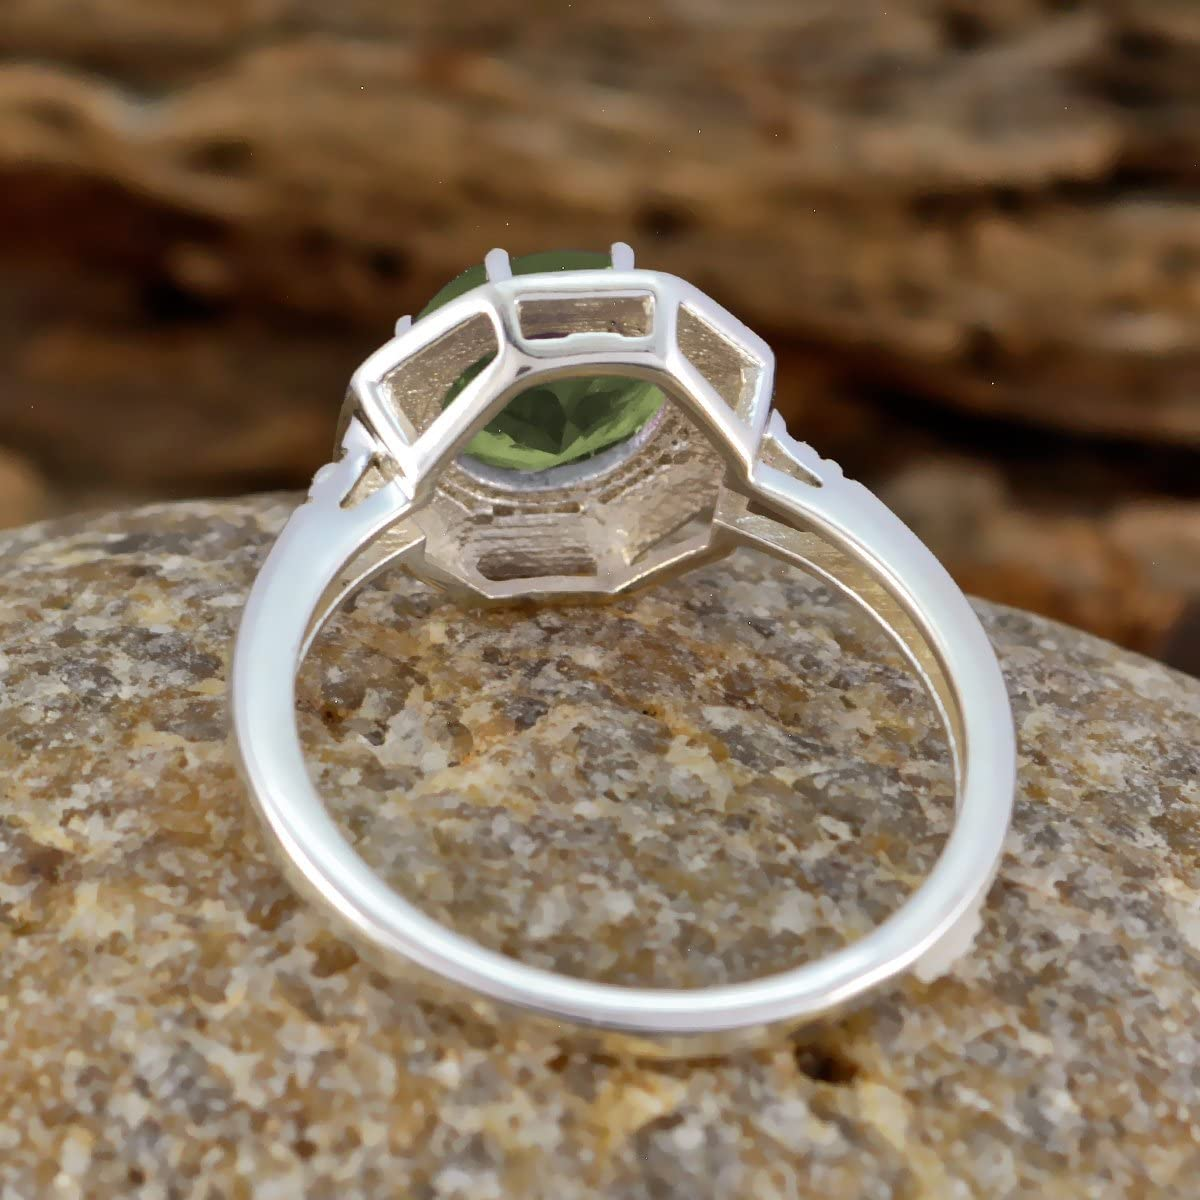 Solid Silver Green Peridot Good Gemstones Ring Handmade Jewelry Great Selling Shops Gift Birthstone Ring Good Gemstones Round Faceted Peridot Ring